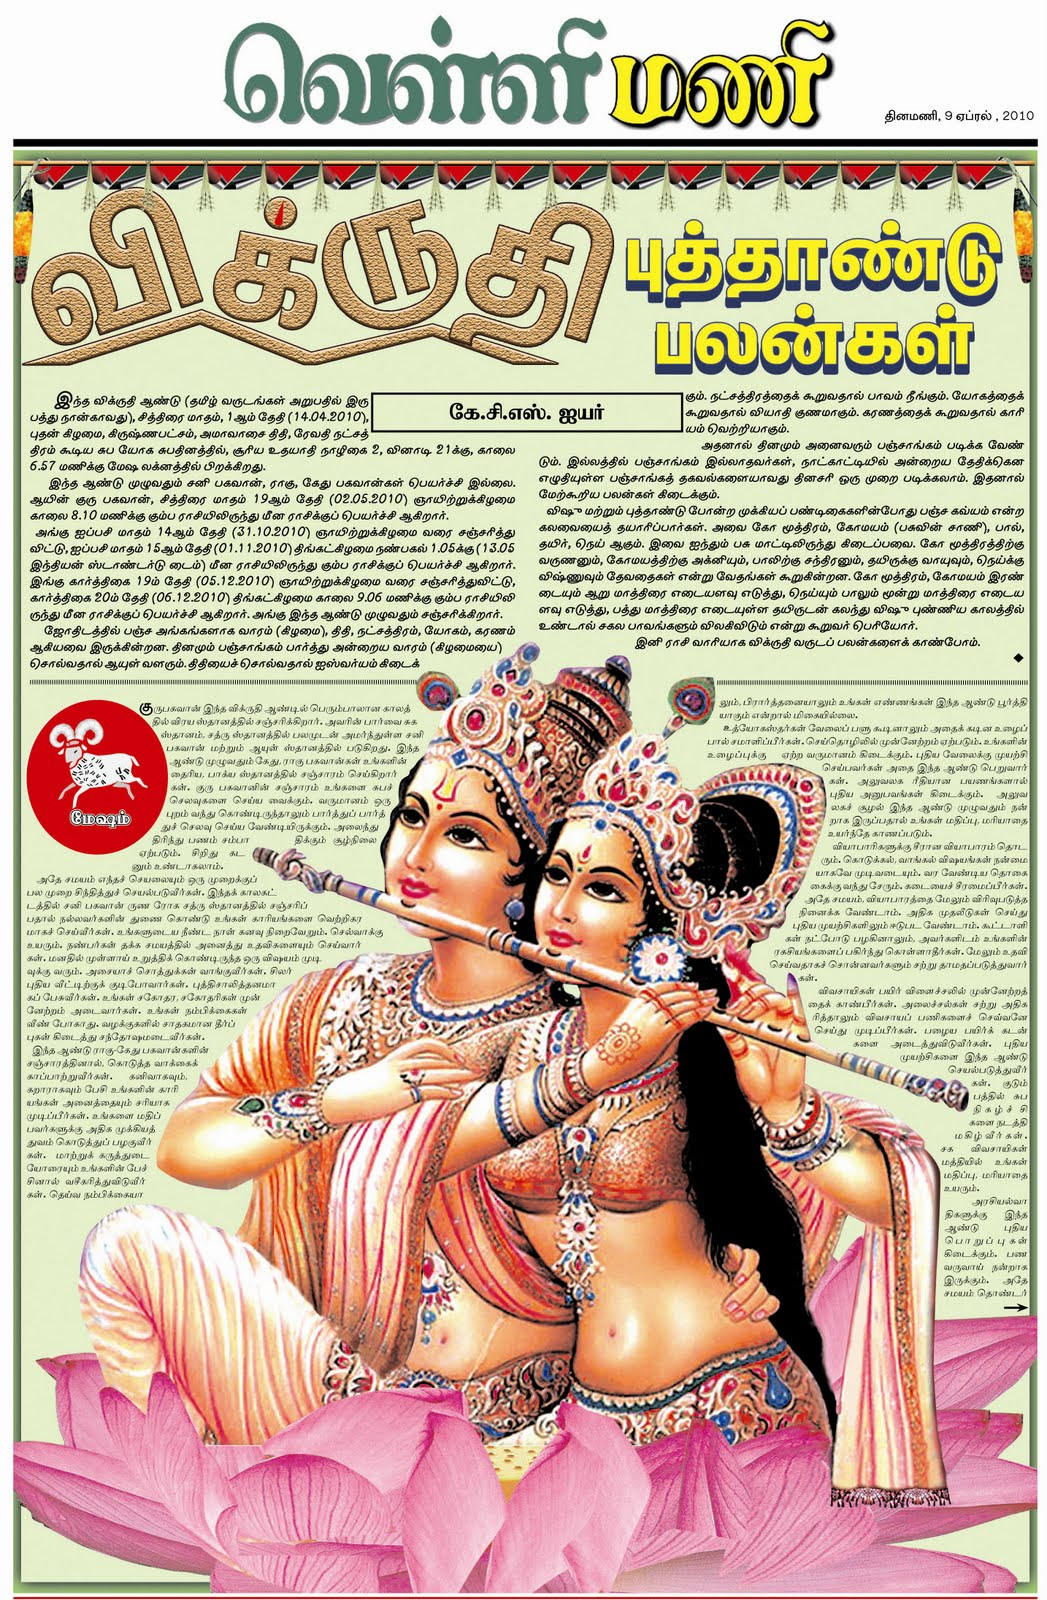 Guru peyarchi palangal 2013 for simha rasi in tamil autos weblog wallpaper gallery guru